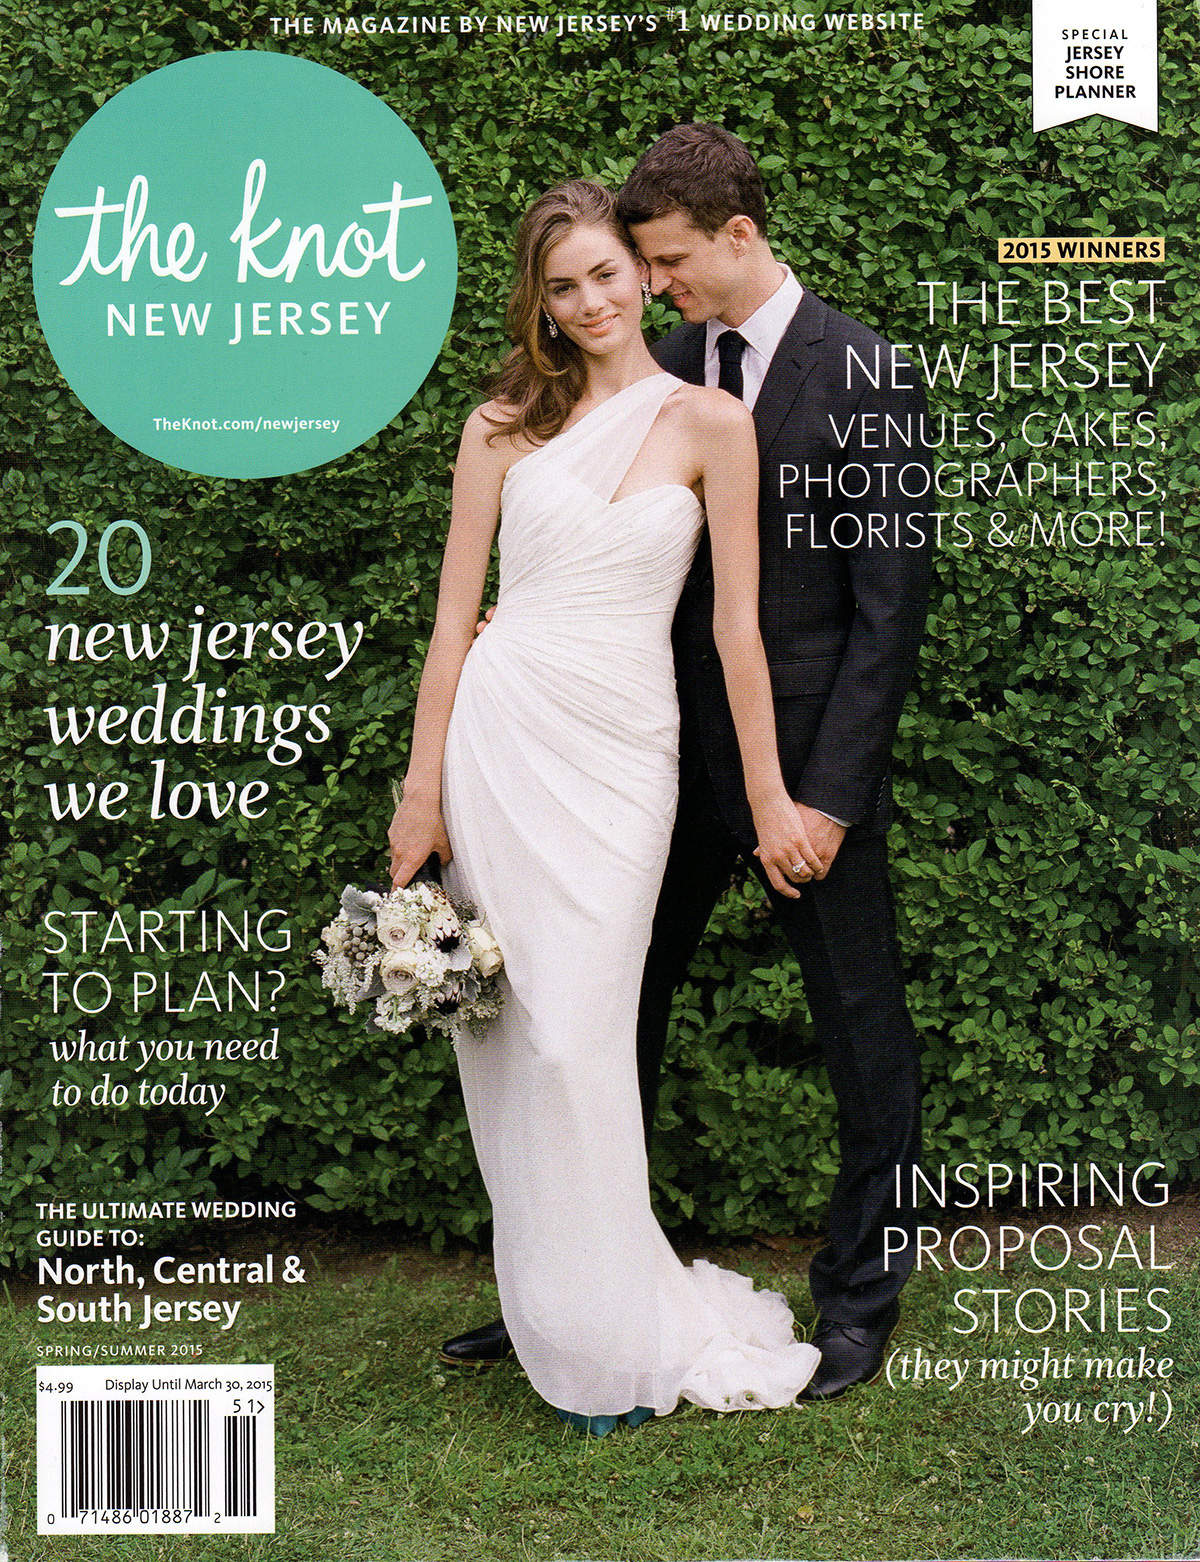 The-knot-magazine-feature-cover